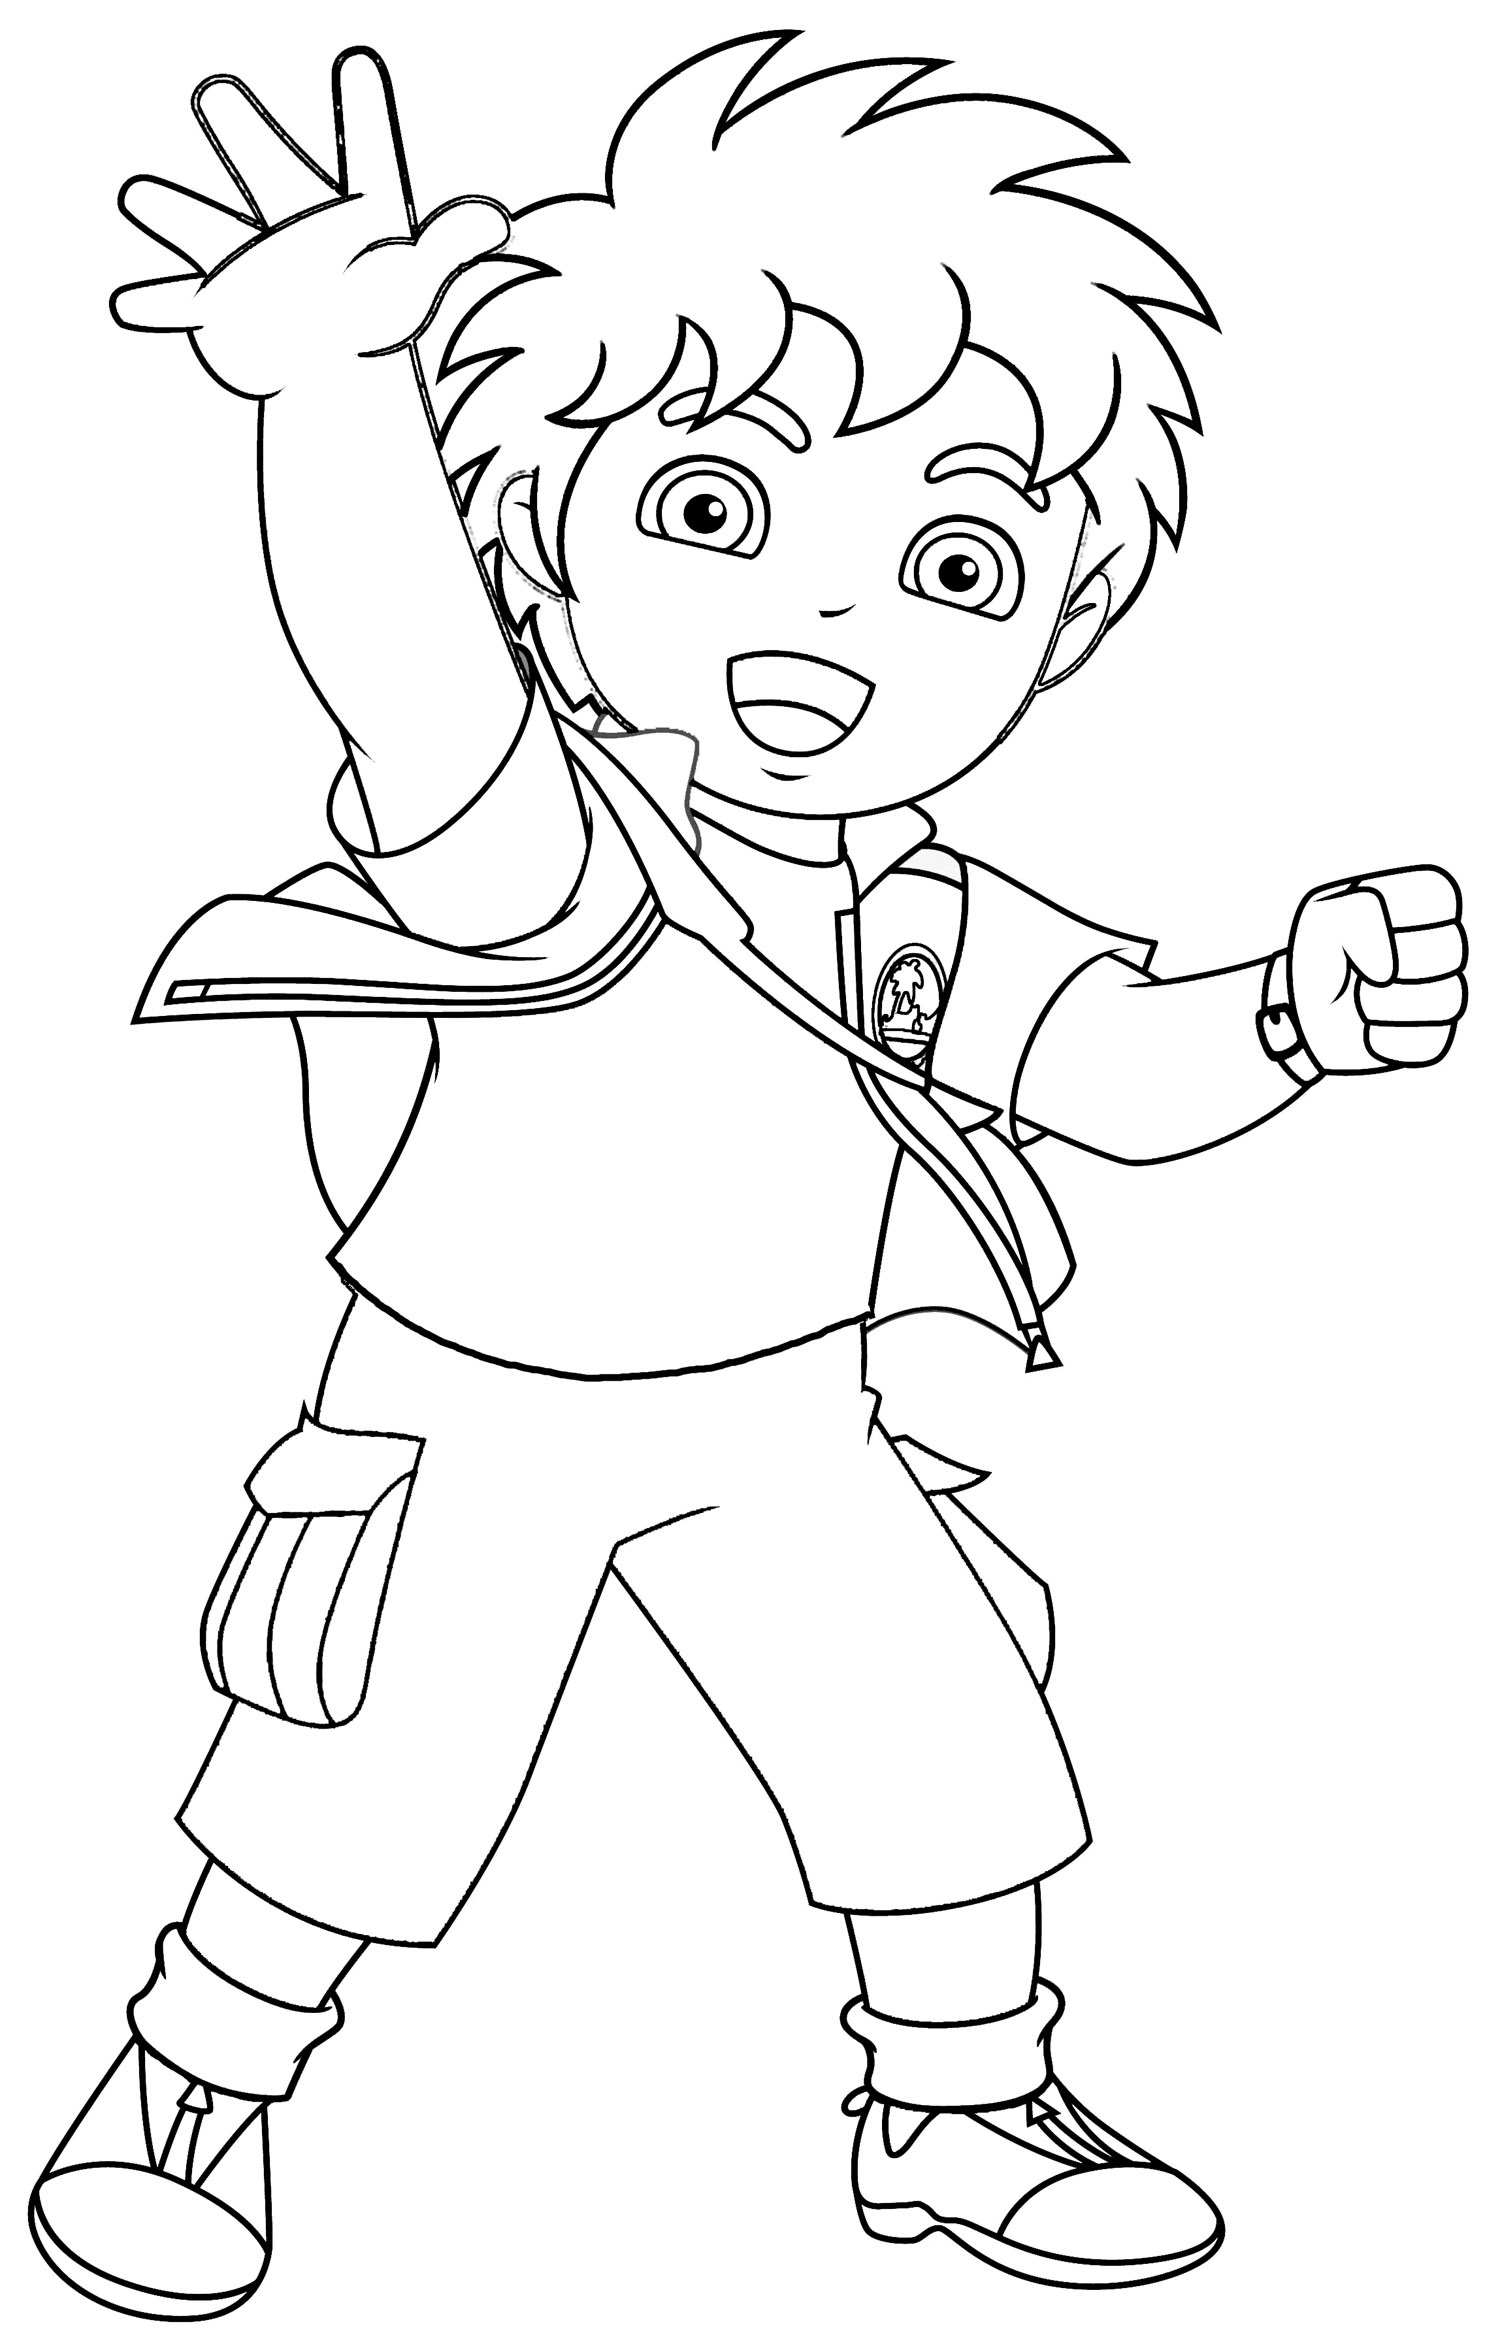 colouring in for kids printable